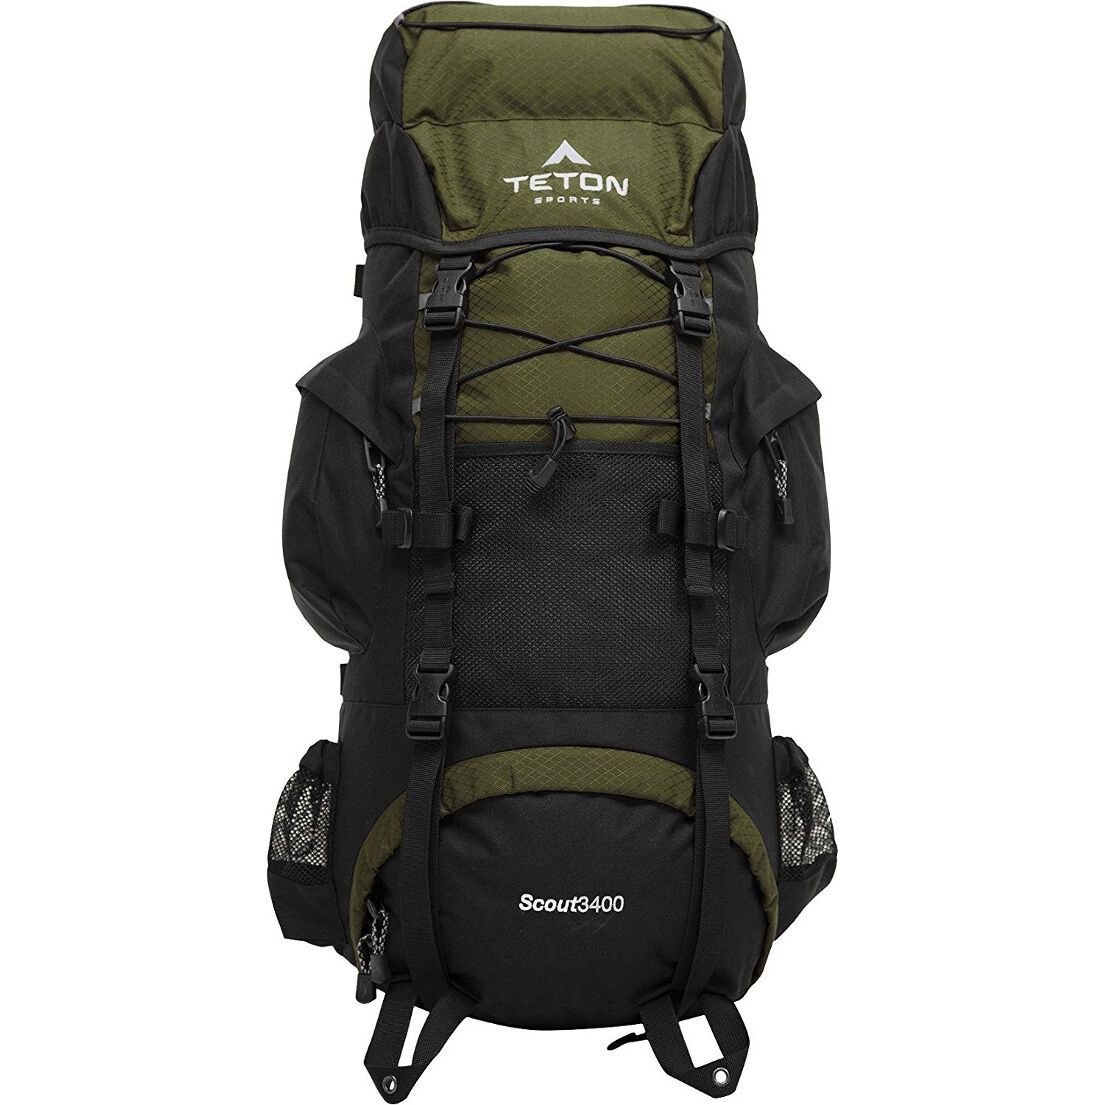 Teton Sports Scout3400 Internal Put up Backpack